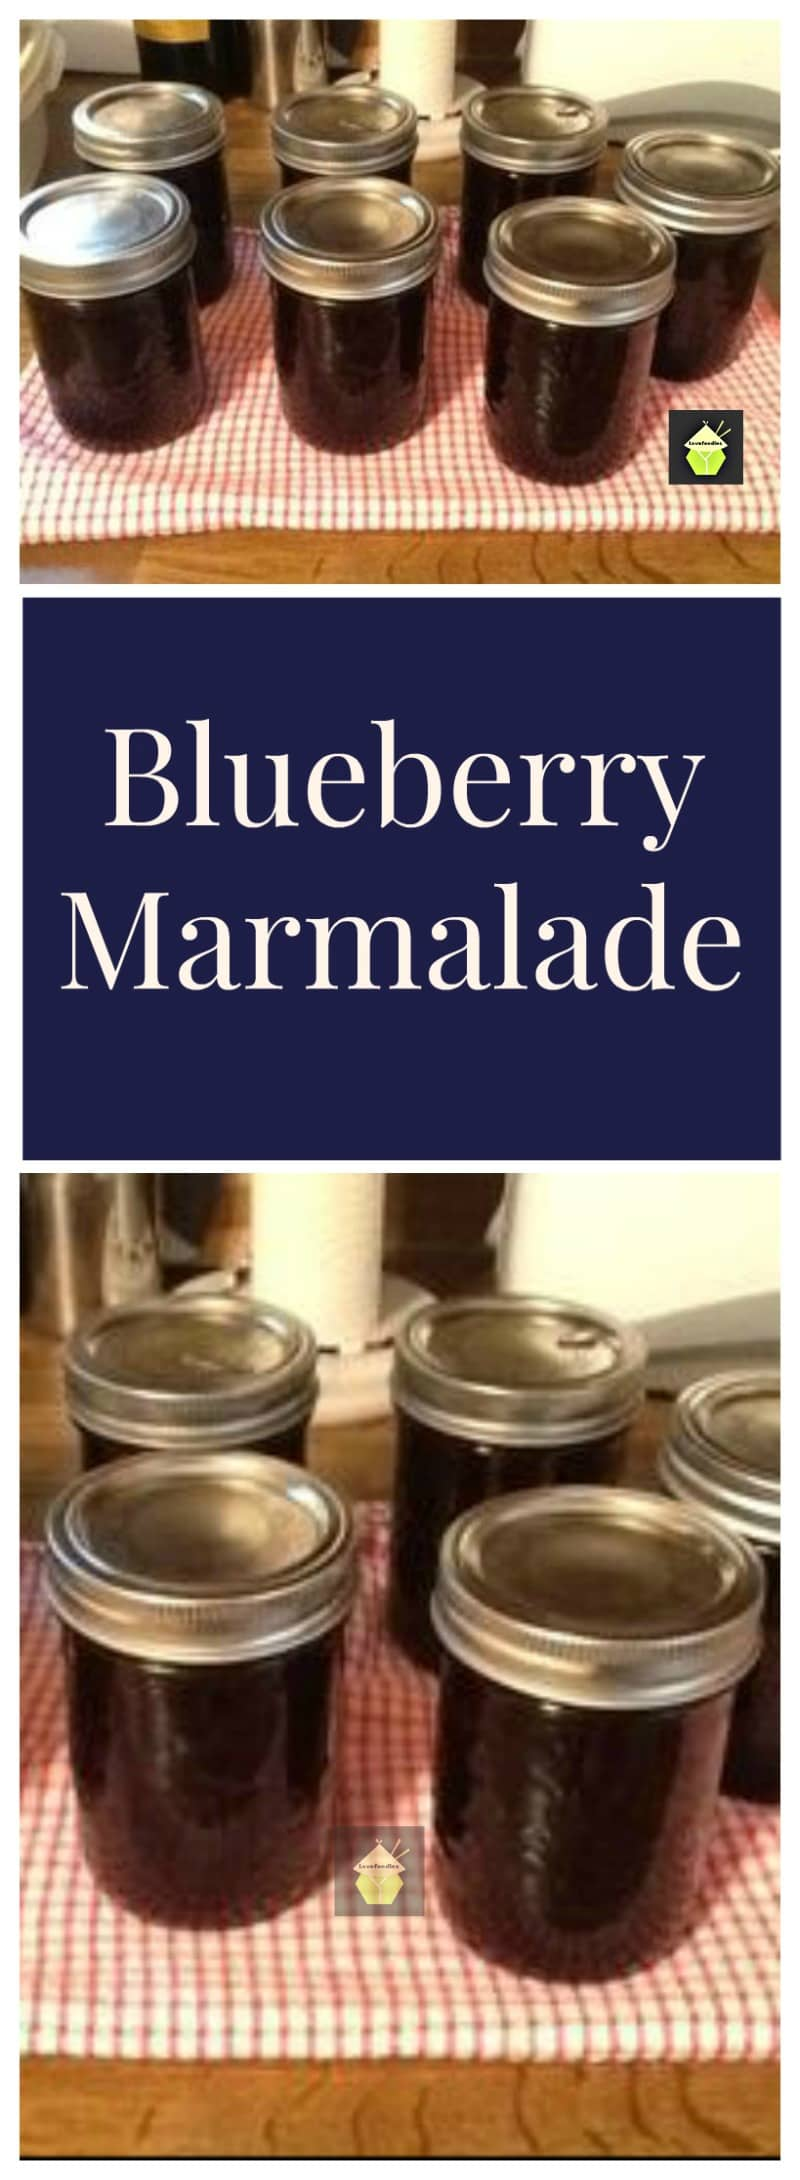 How To Make Blueberry Marmalade. This is a wonderful recipe and an old family favorite!